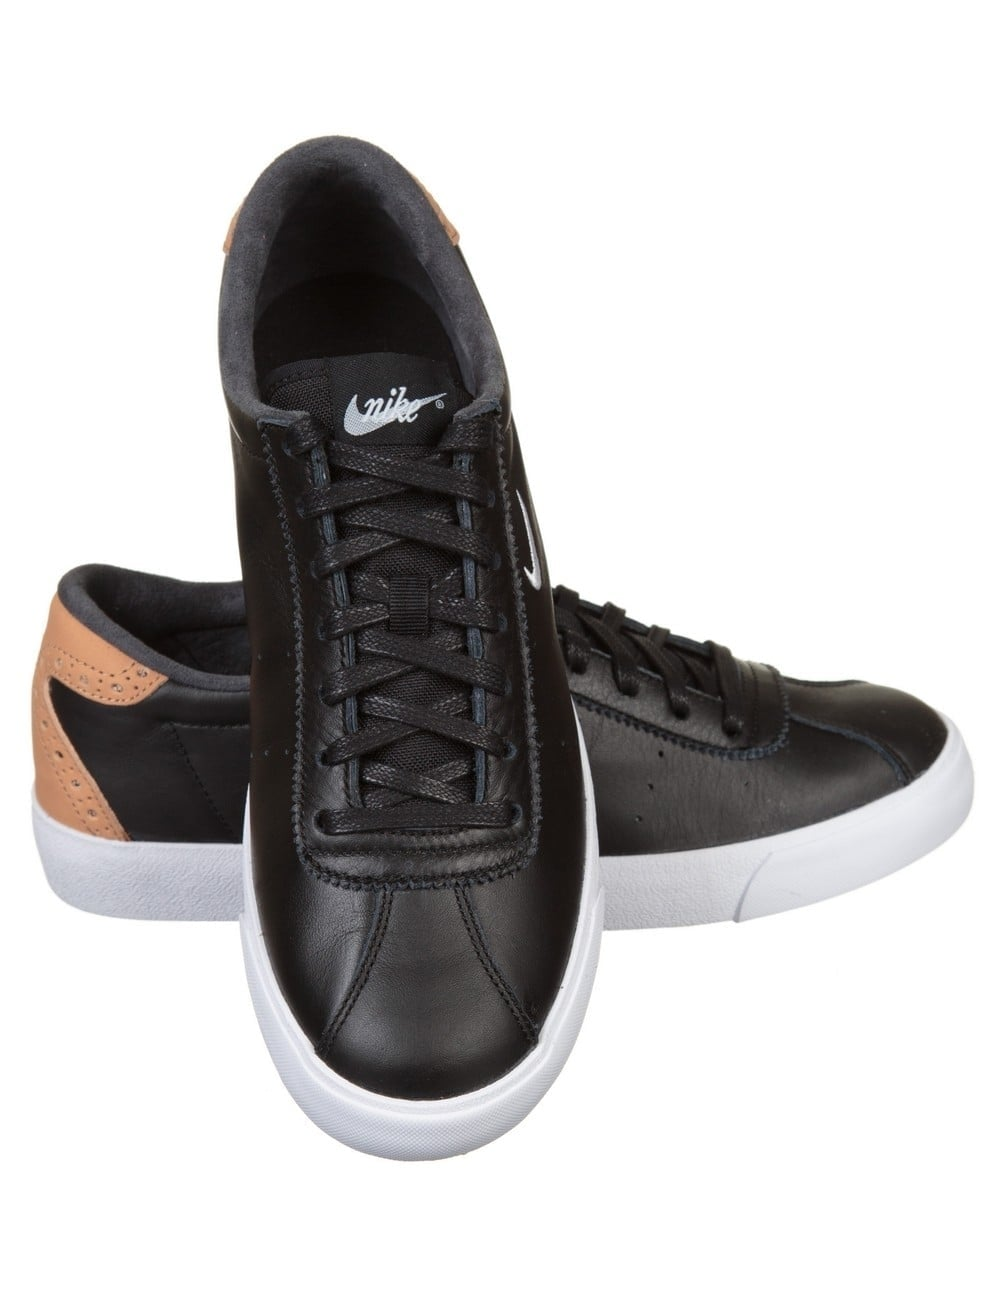 Nike Tennis Match Classic Shoes - Black/White - Nike from ...